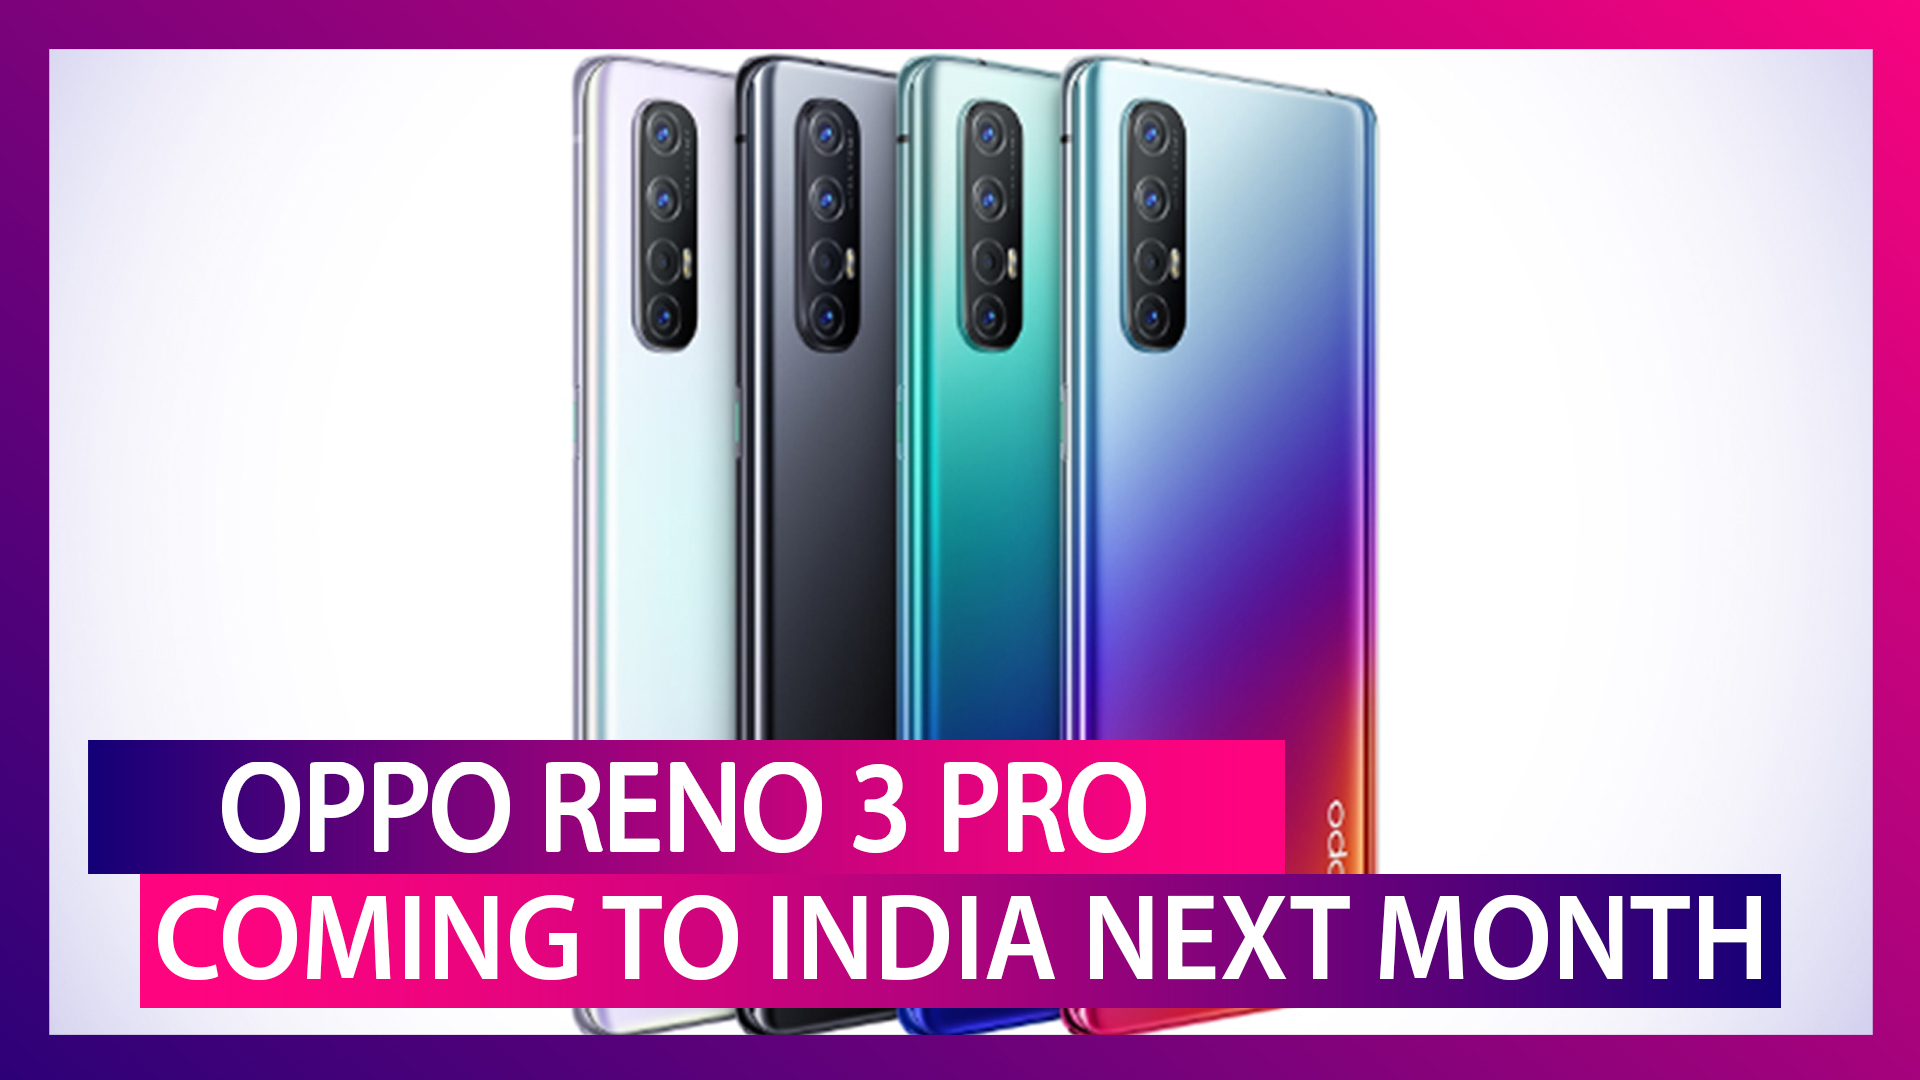 Oppo Reno 3 Pro May Be Launched in India Next Month; Expected Price, Features, Variants & Specs